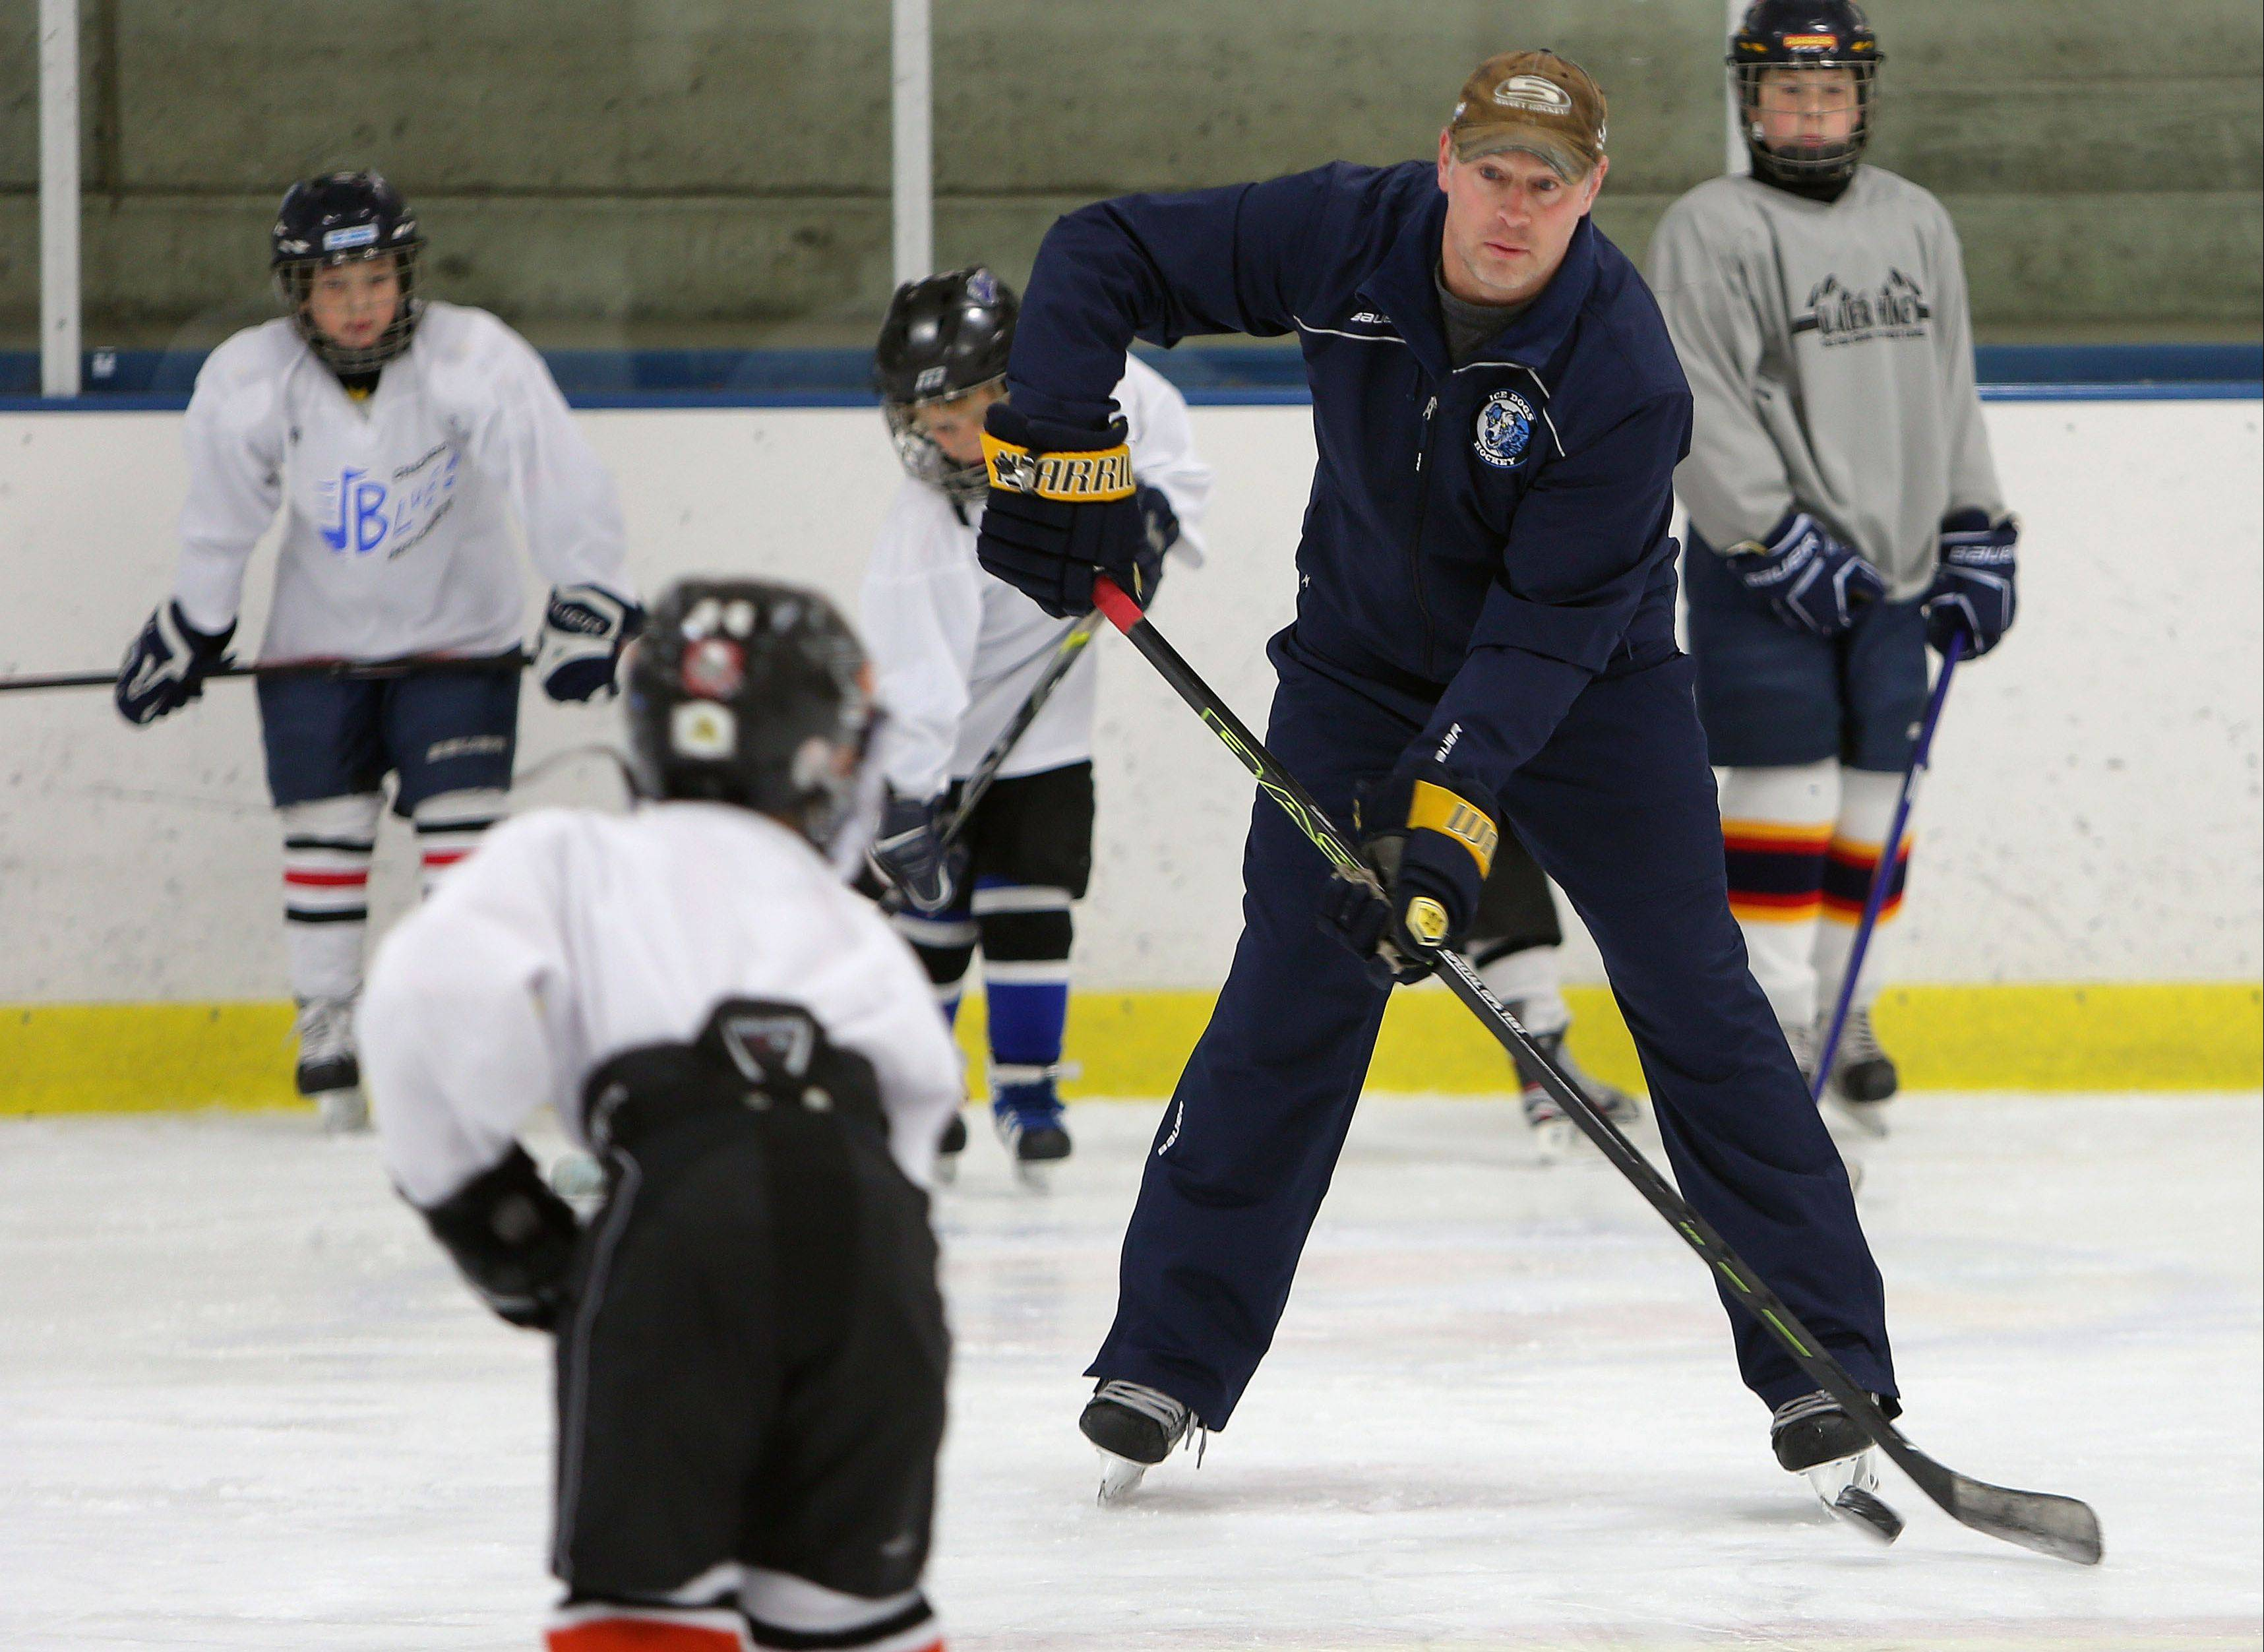 Former Chicago Blackhawks player Steve Dubinsky takes kids through drills during his hockey clinic Wednesday at Glacier Ice Arena in Vernon Hills.